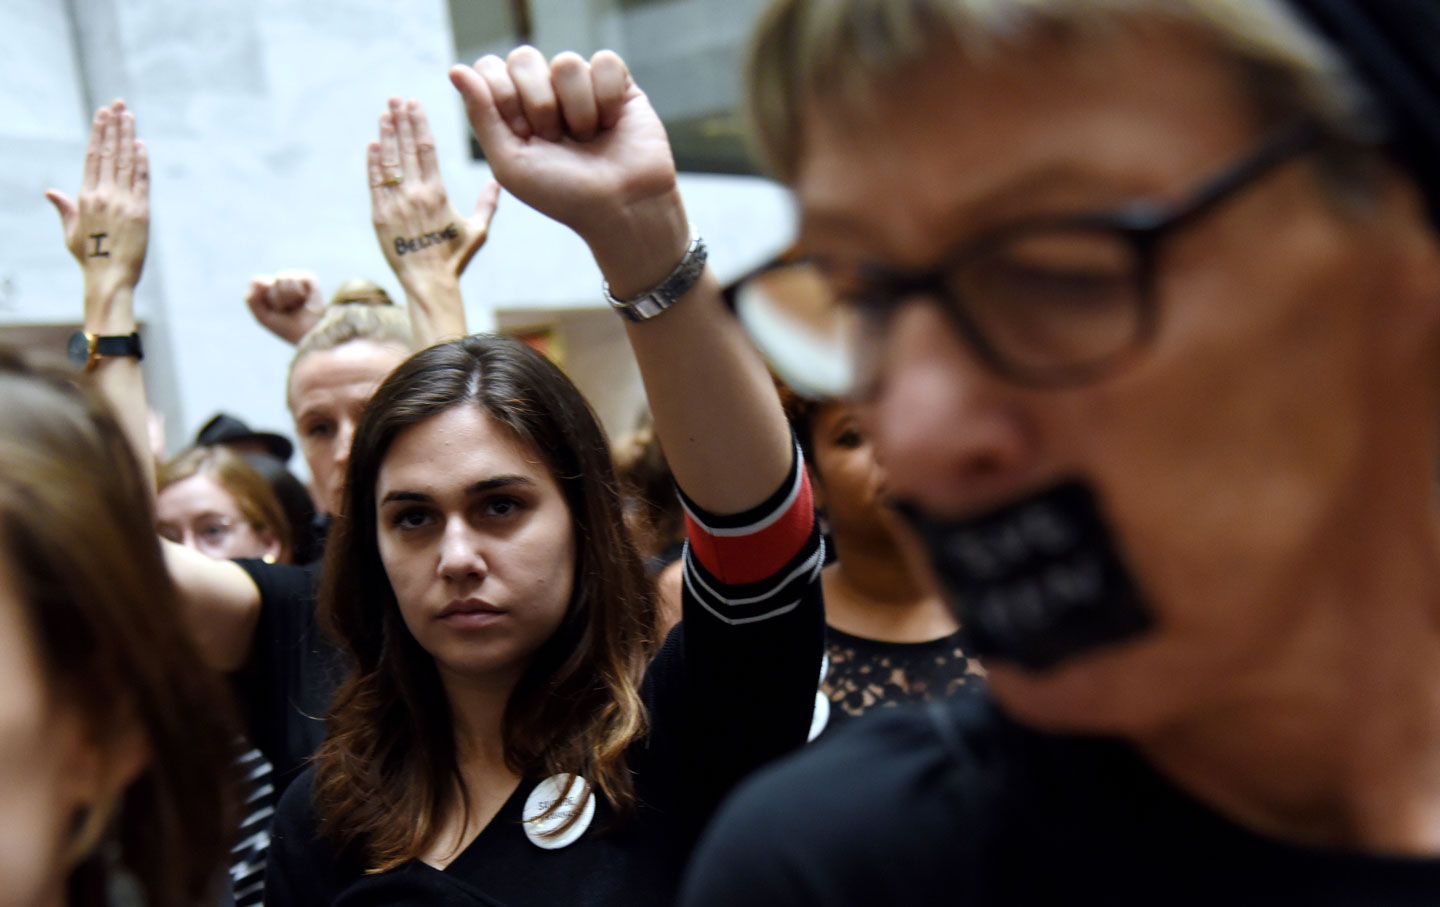 Demonstrators opposed to the Supreme Court nominee Brett Kavanaugh protest inside the Hart building on Capitol Hill.